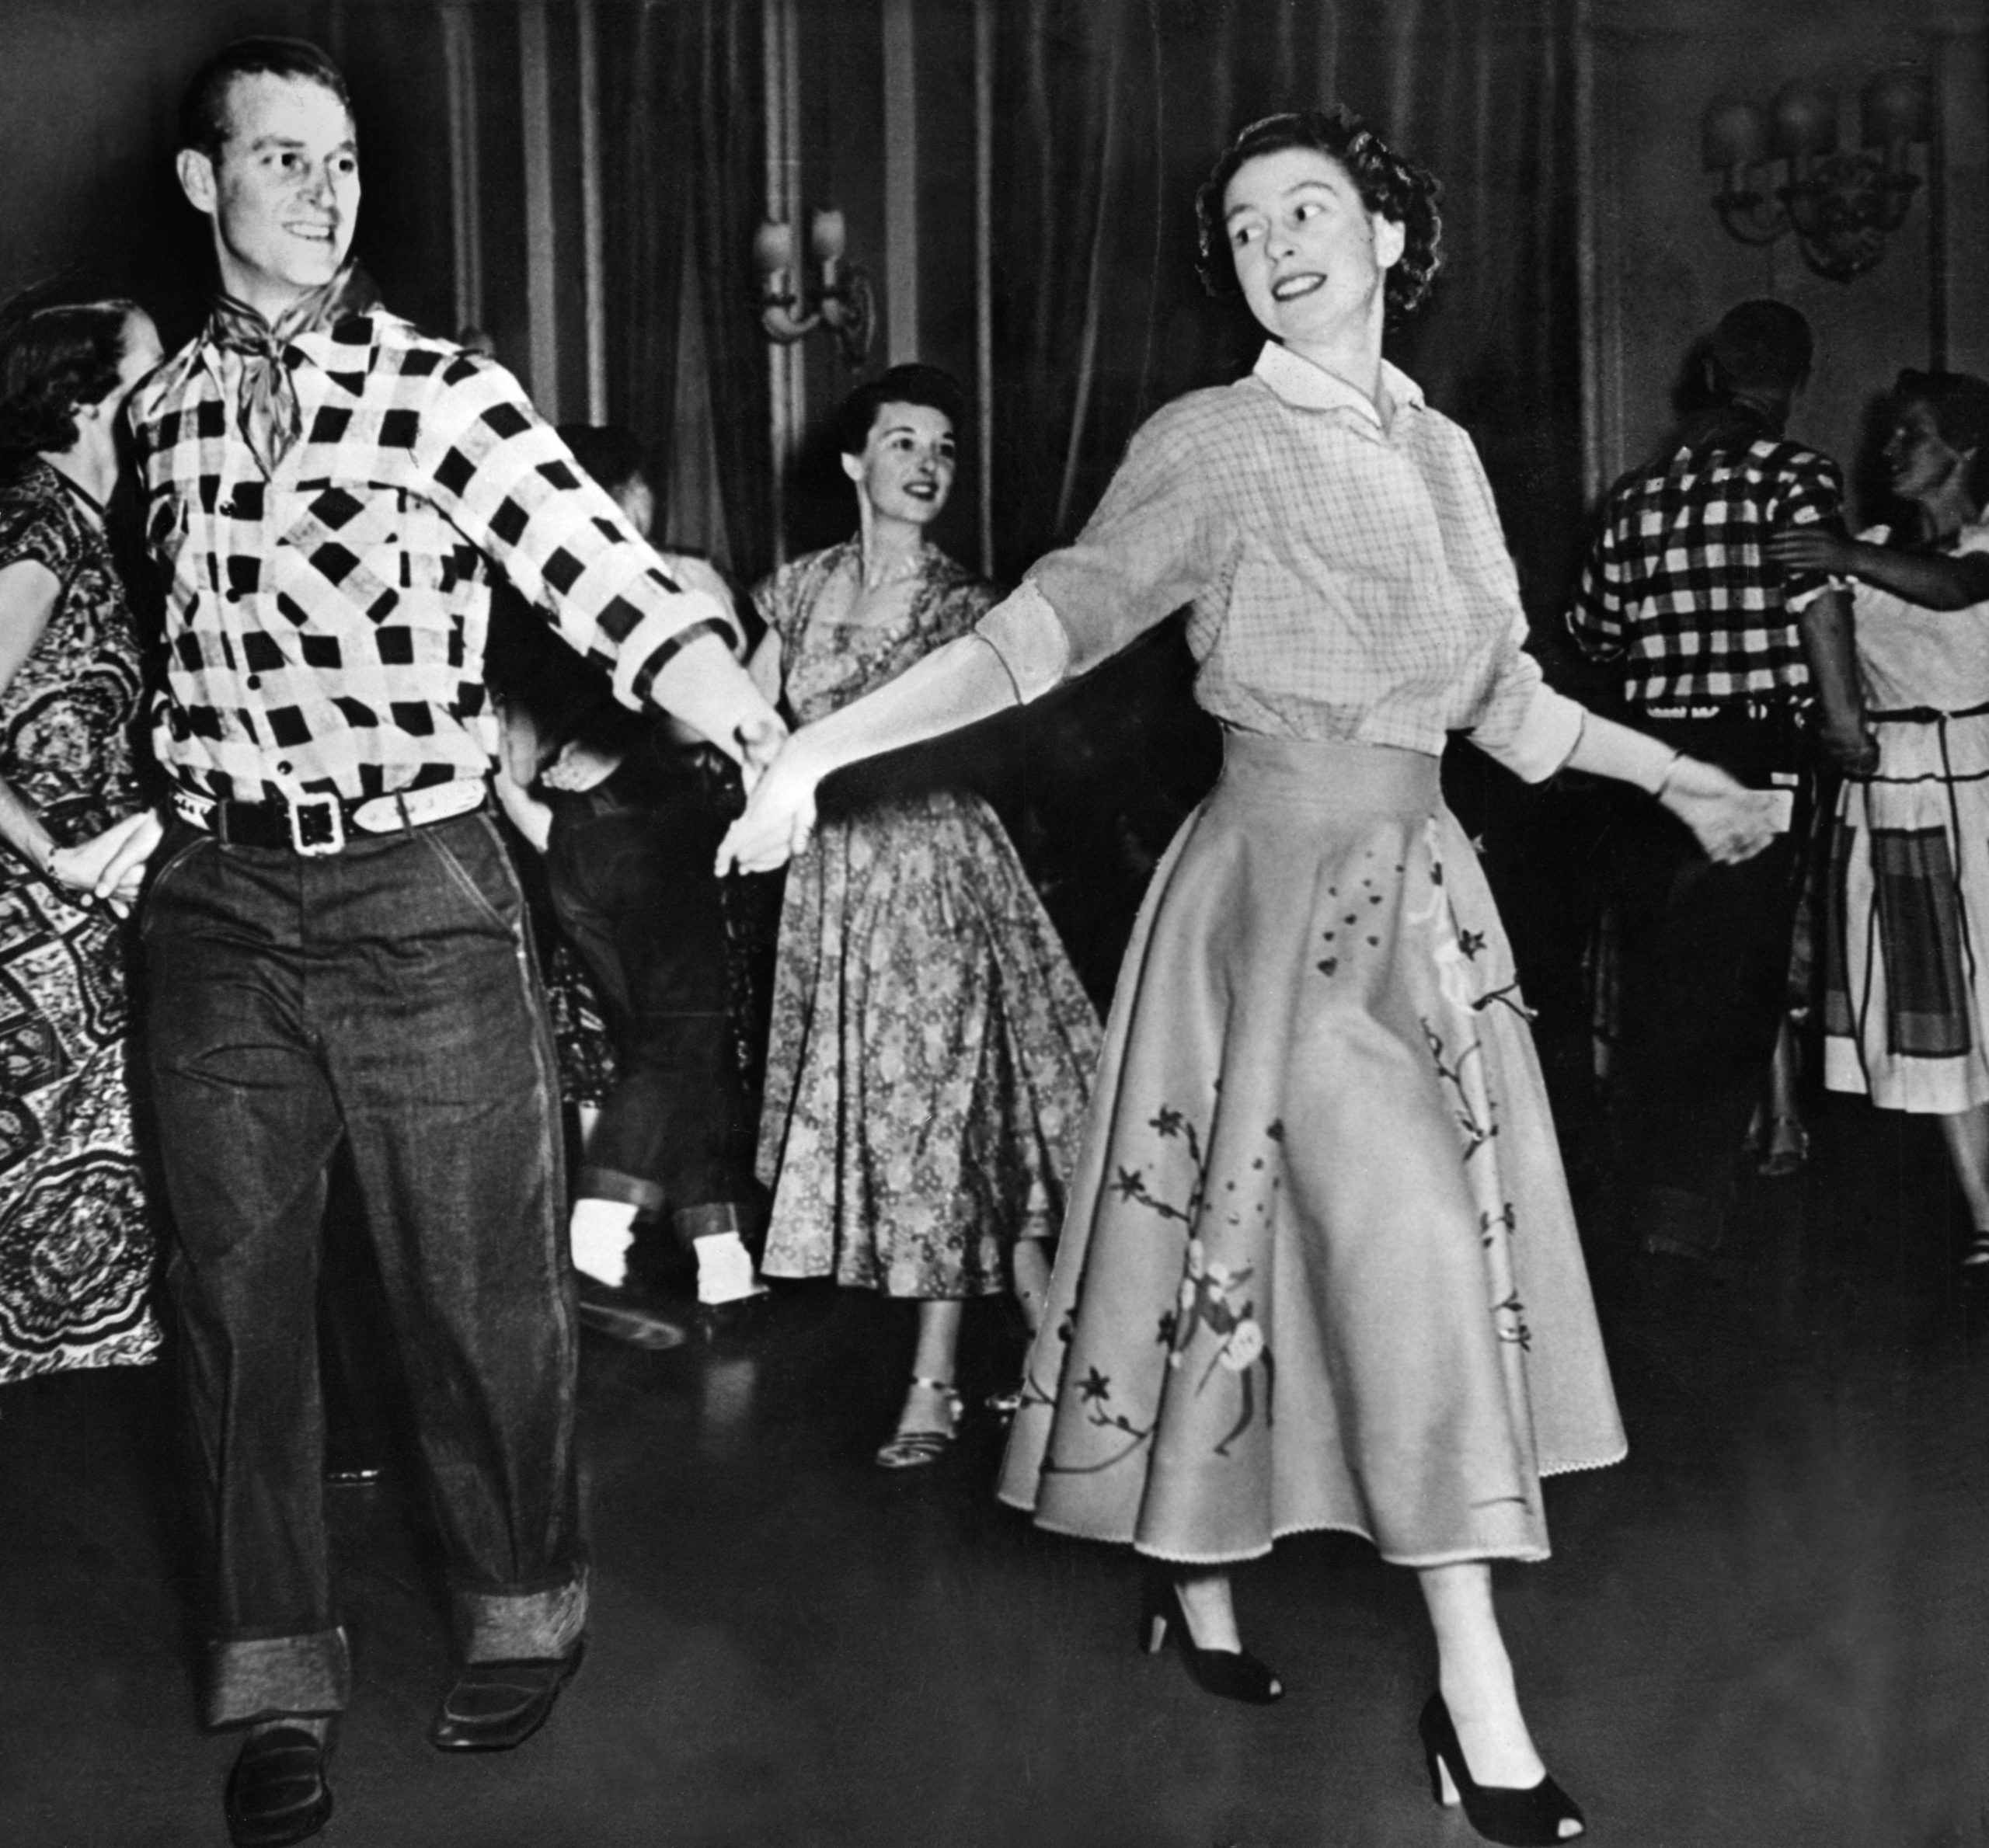 Queen Elizabeth II and Prince Philip square dancing at Rideau Hall, October 1951.